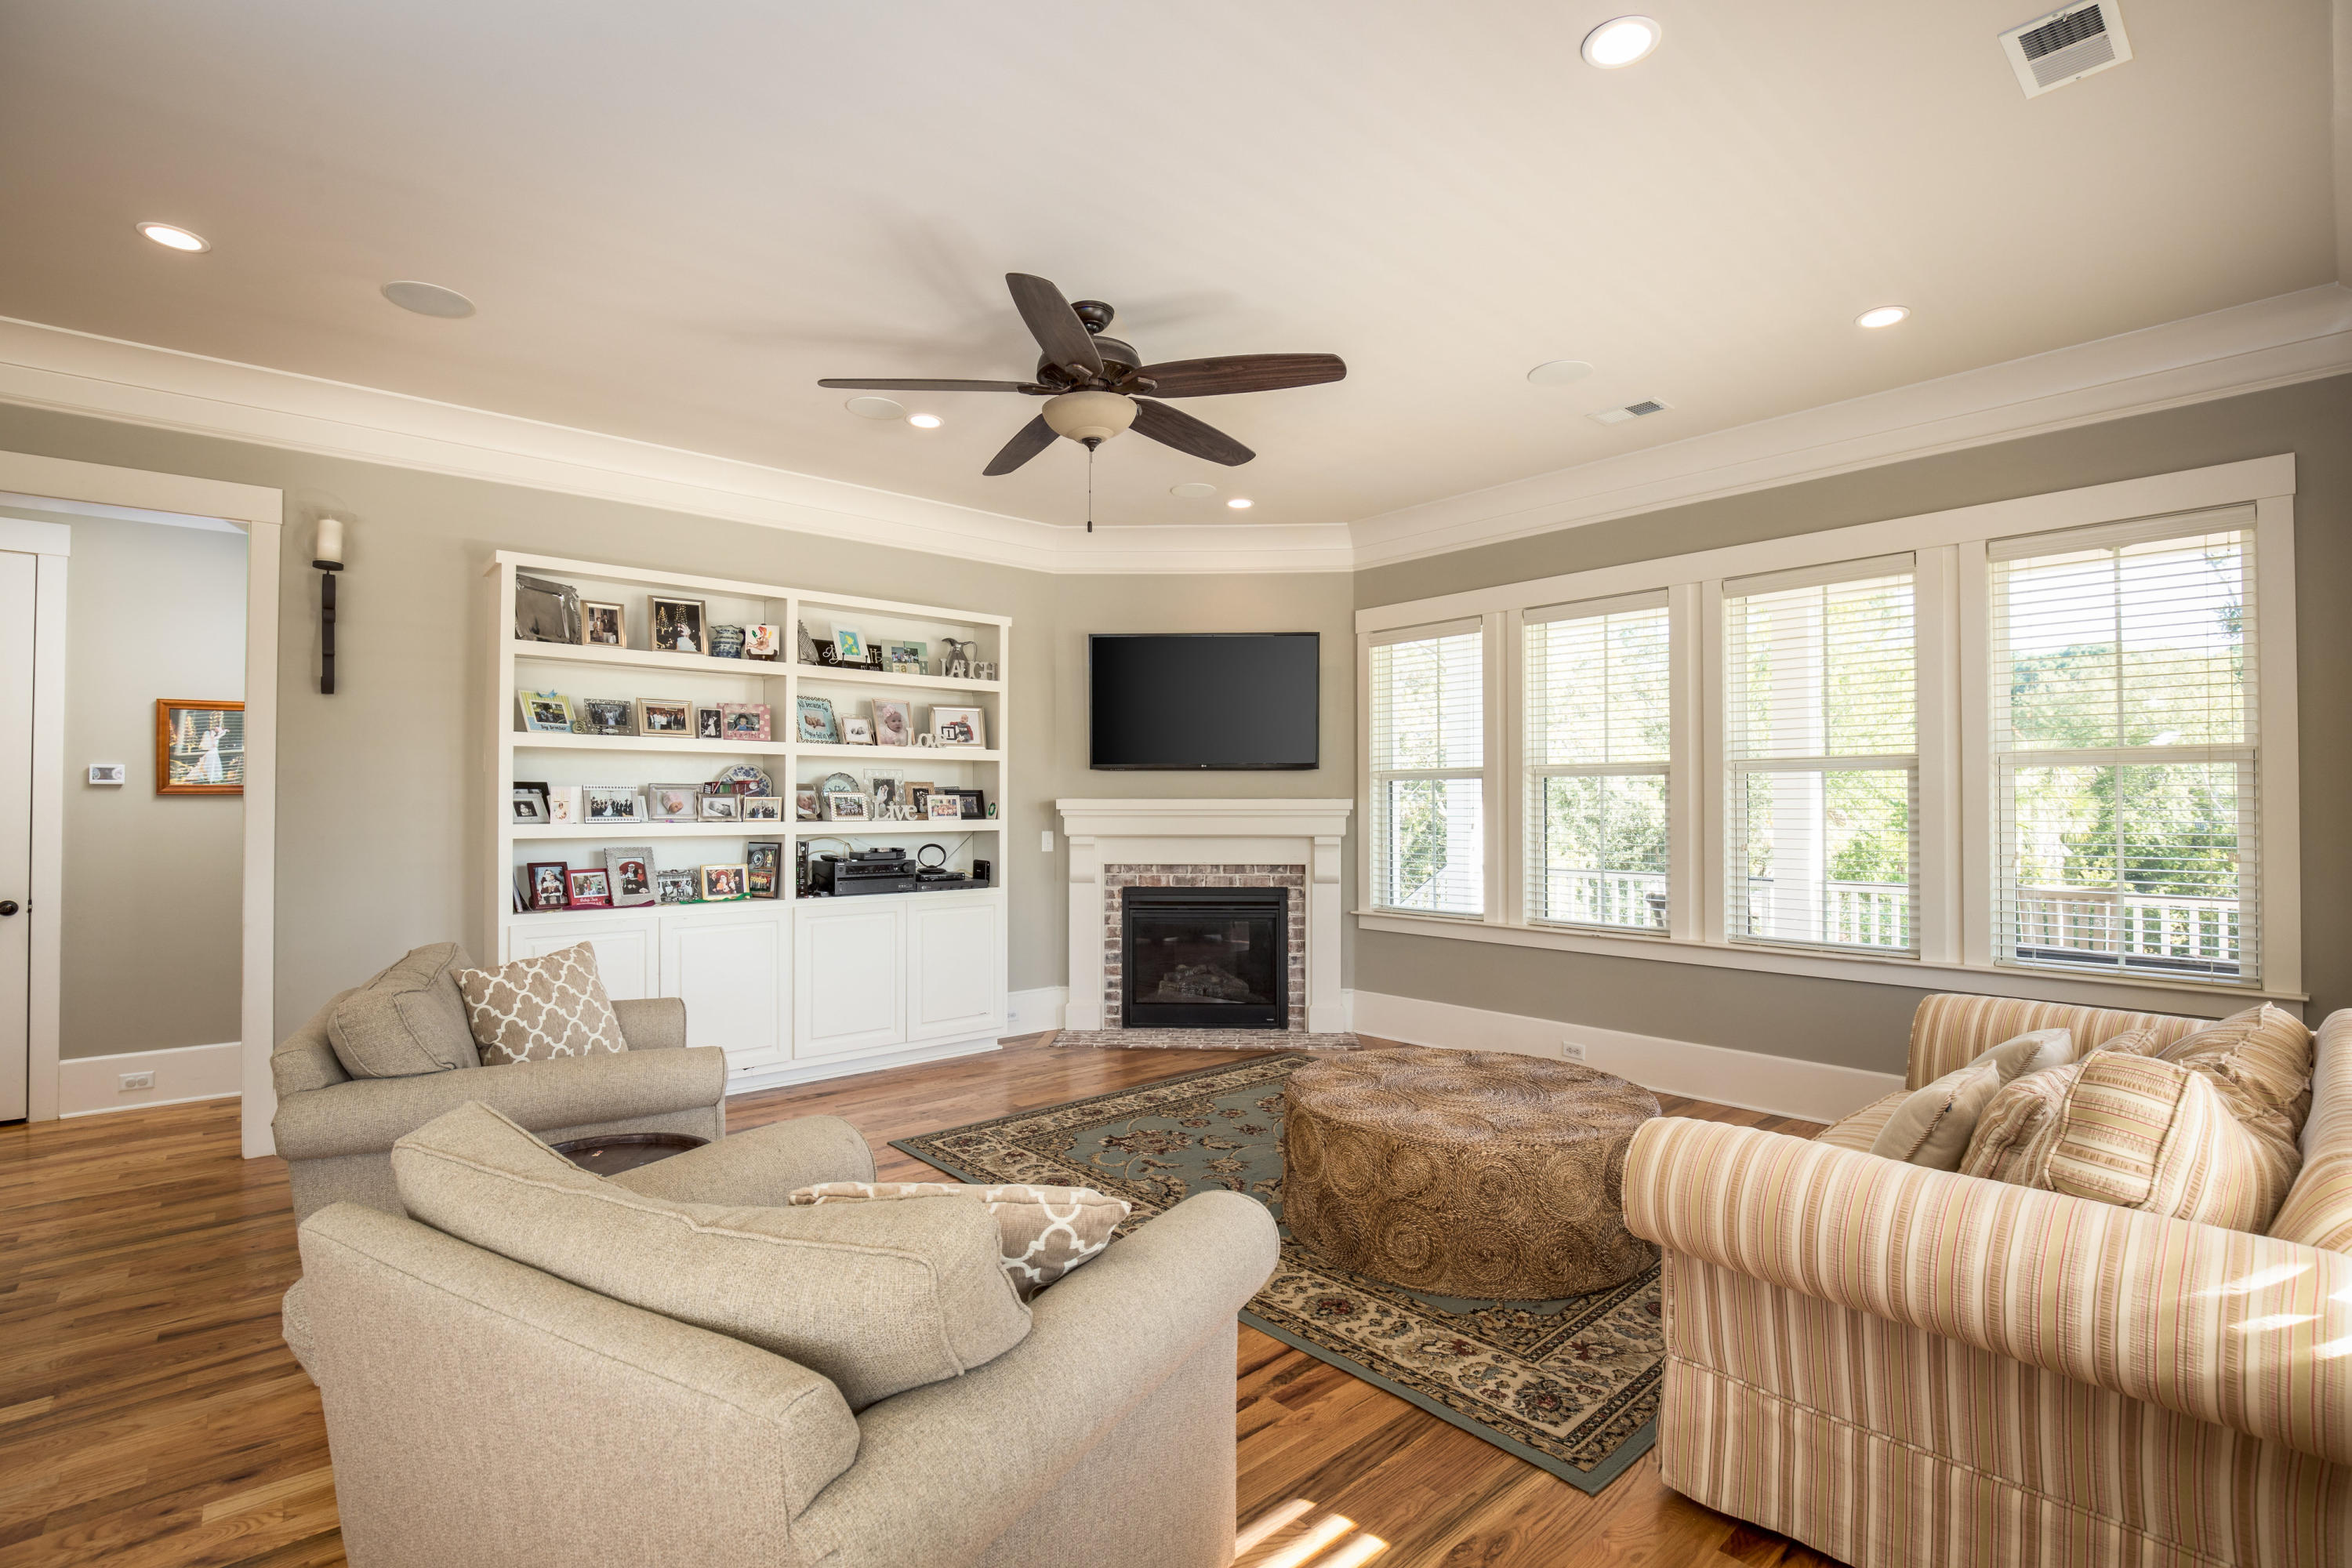 Home for sale 1790 Canyon Oaks Drive, Seaside Farms, Mt. Pleasant, SC